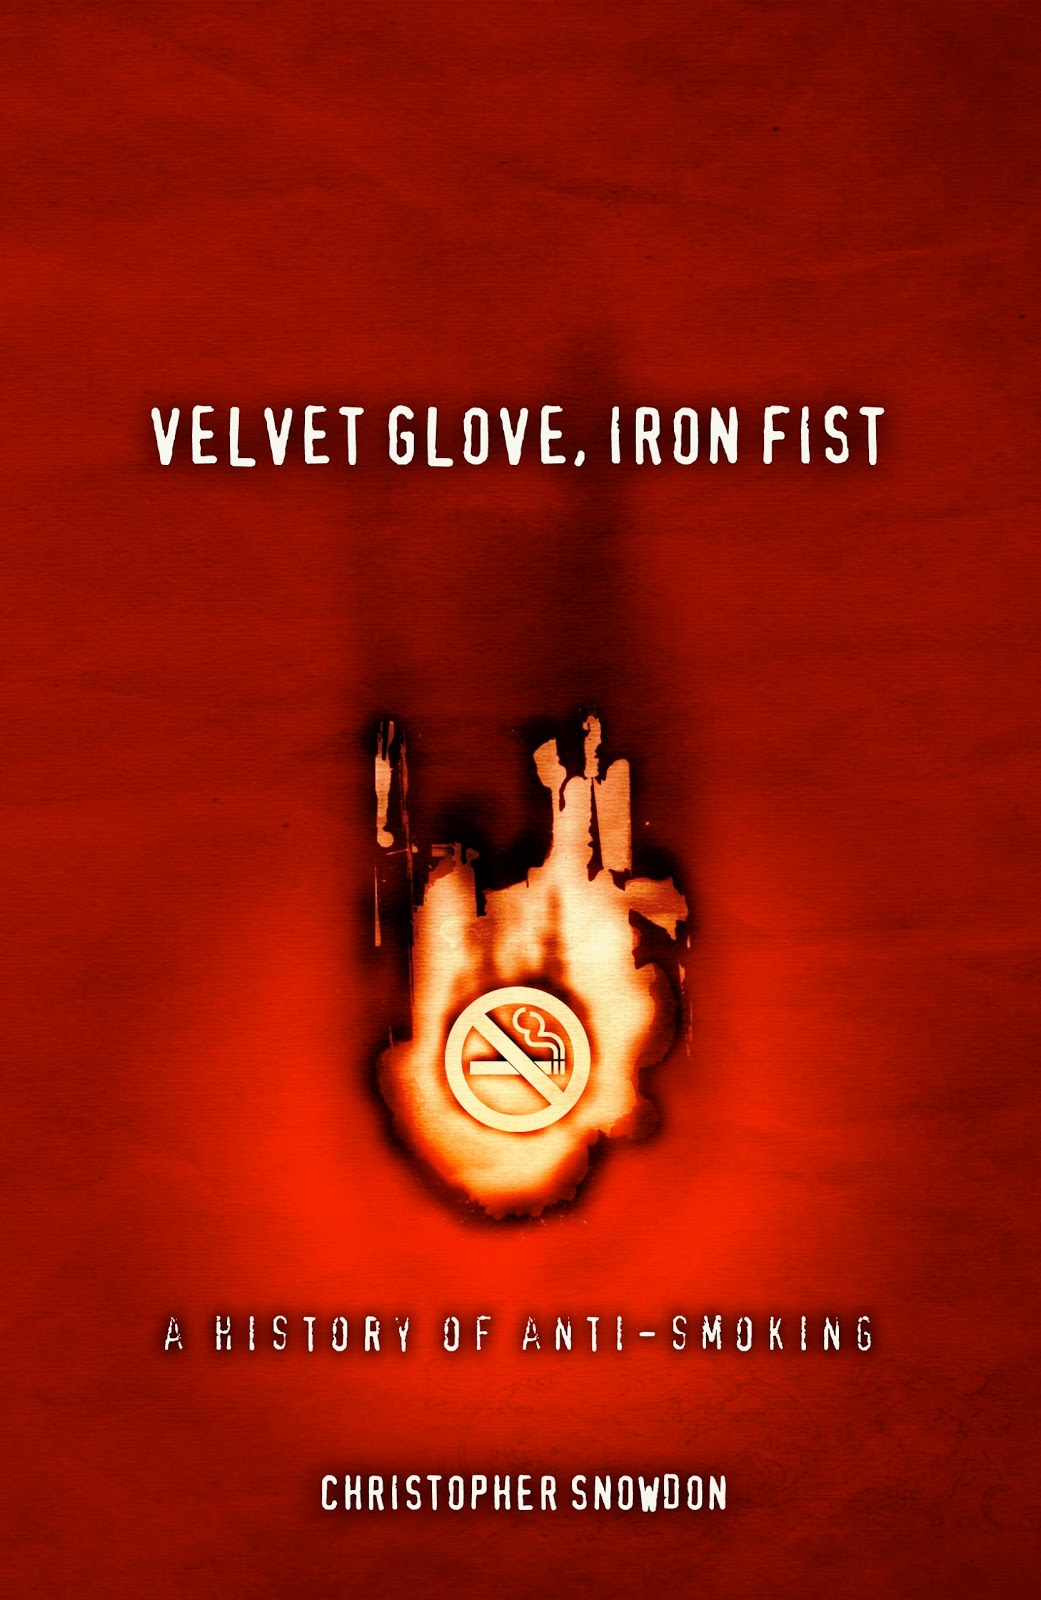 velvet glove and iron fist